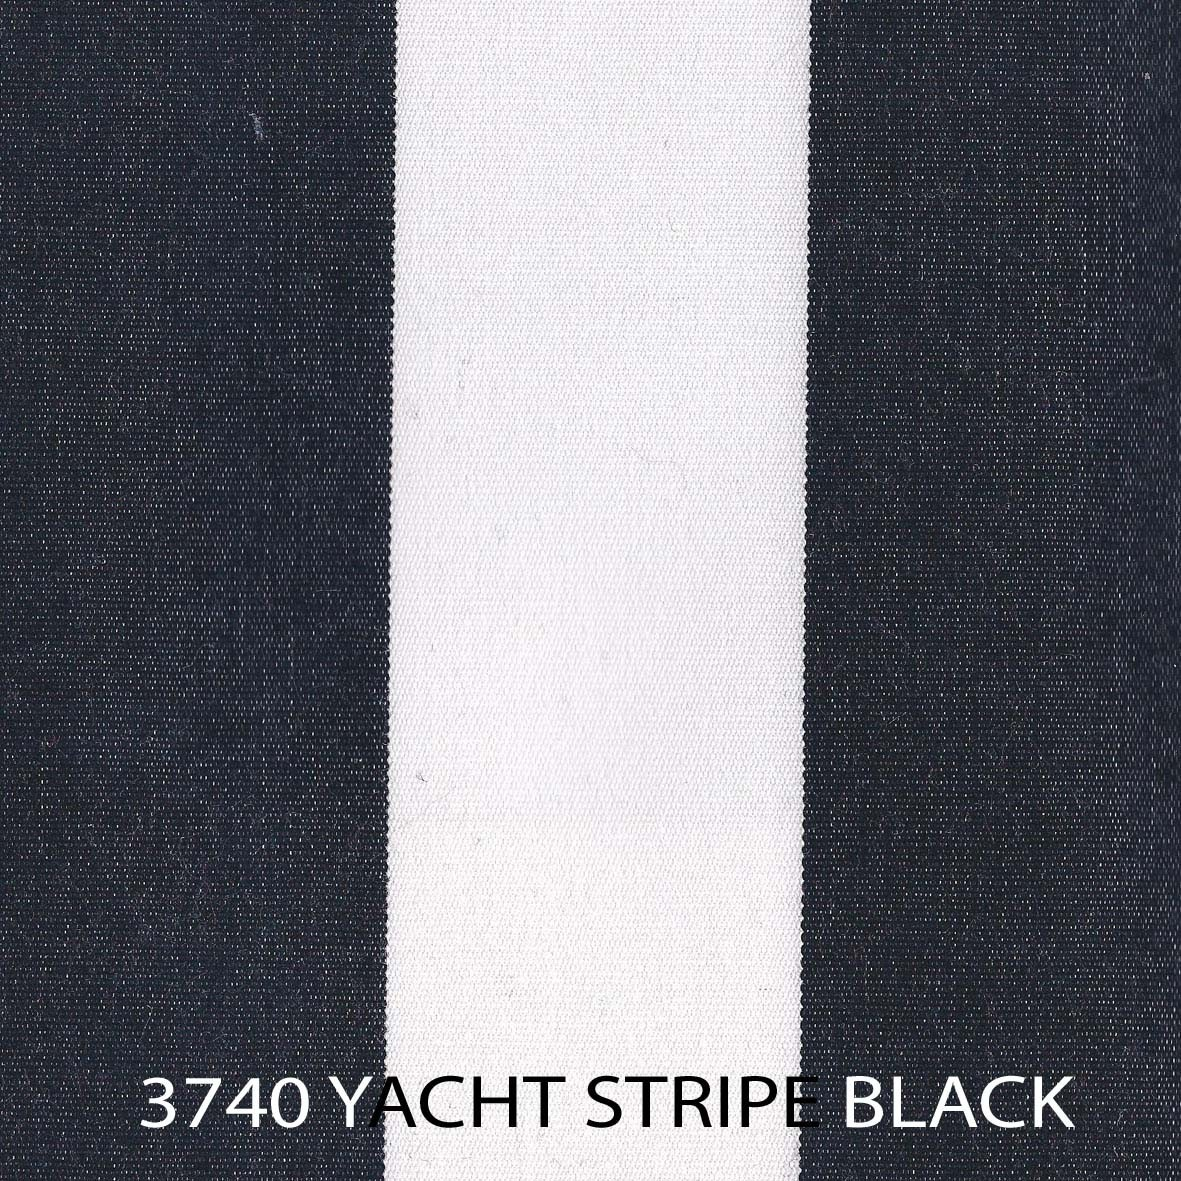 Yacht Stripe Black